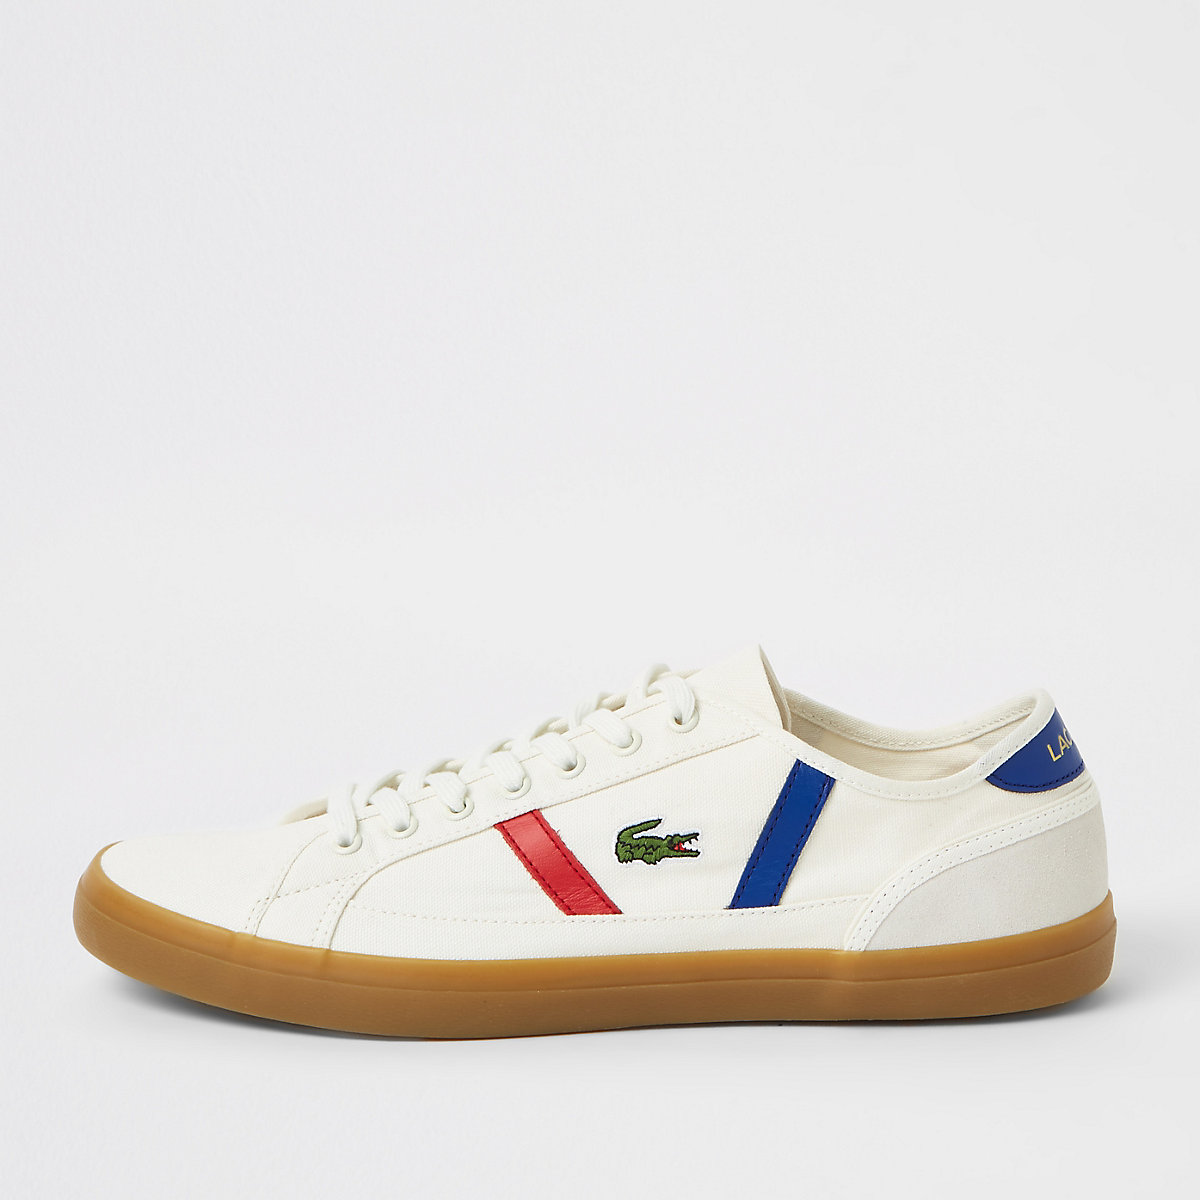 Lacoste white side trim trainers